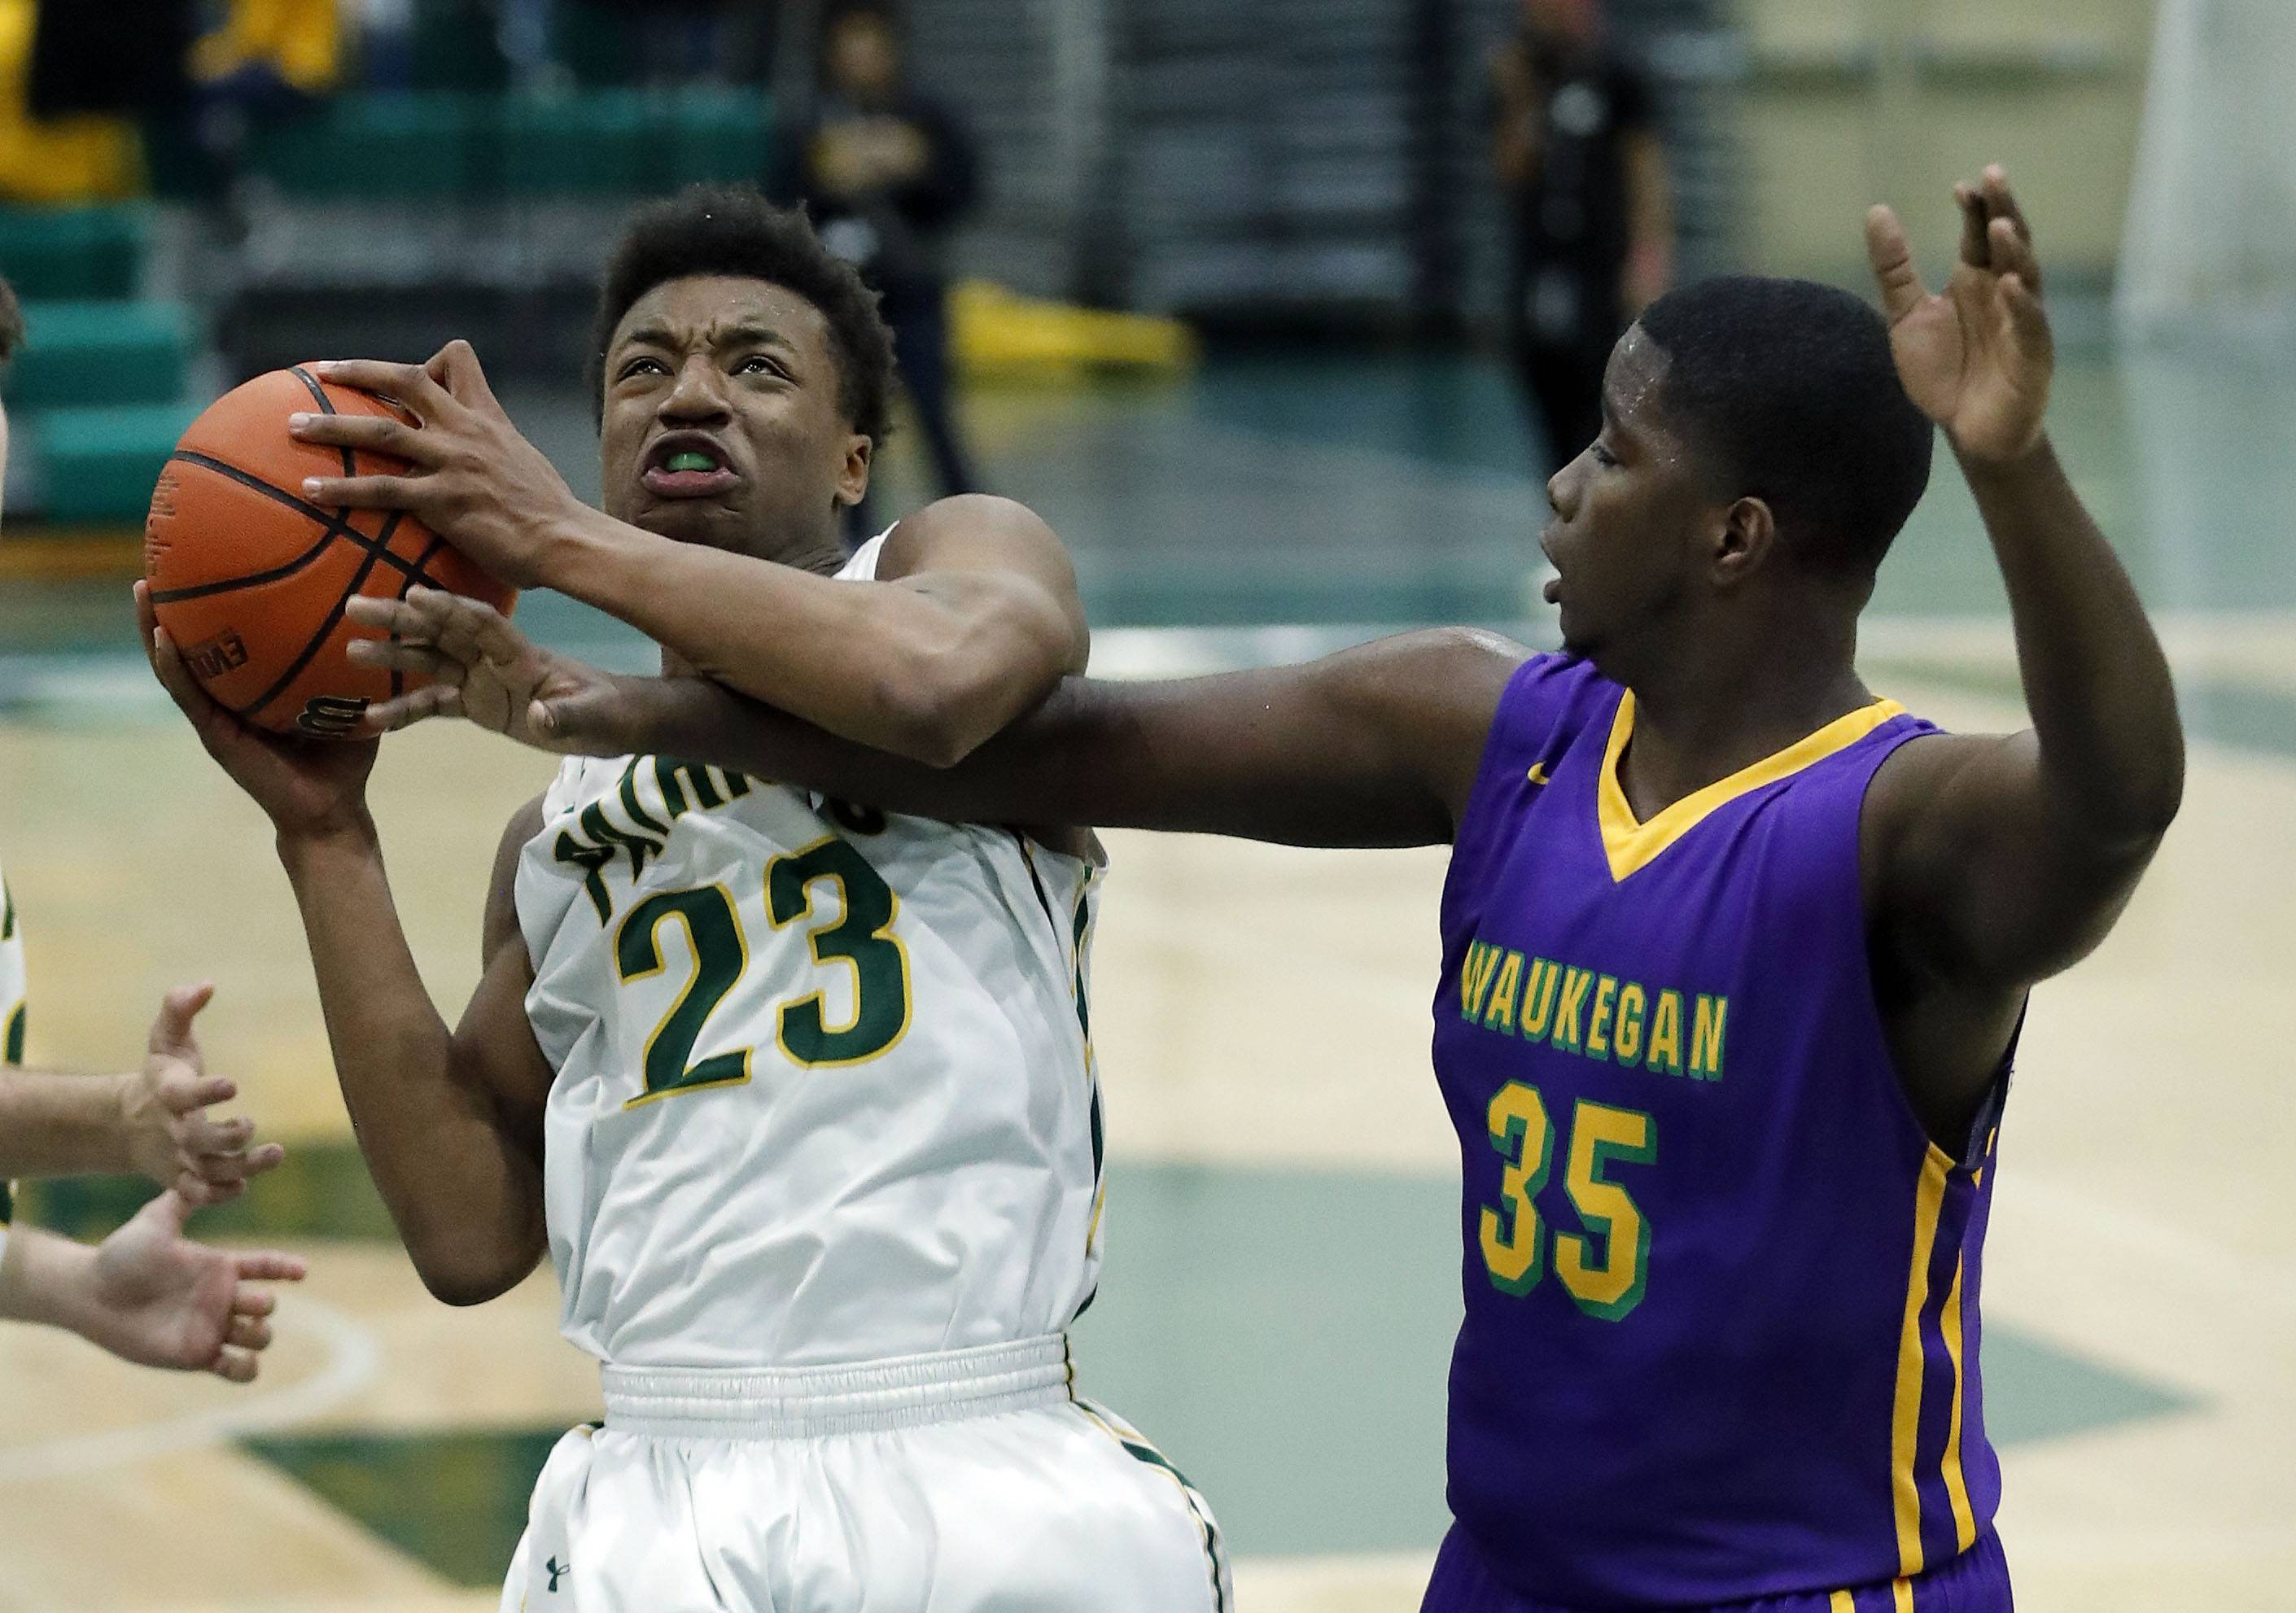 Stevenson's RJ Holmes (23) and Waukegan's Javeon Taylor battle for a rebound during their game Friday night in Lincolnshire.